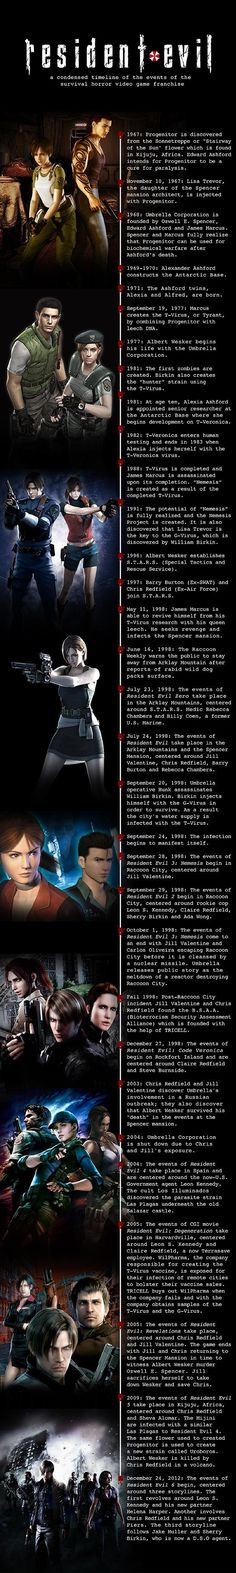 #Gamer #Infographic All things #ResidentEvil up to Resident Evil 6, in this story telling timeline infographic! http://www.levelgamingground.com/resident-evil-timeline.html